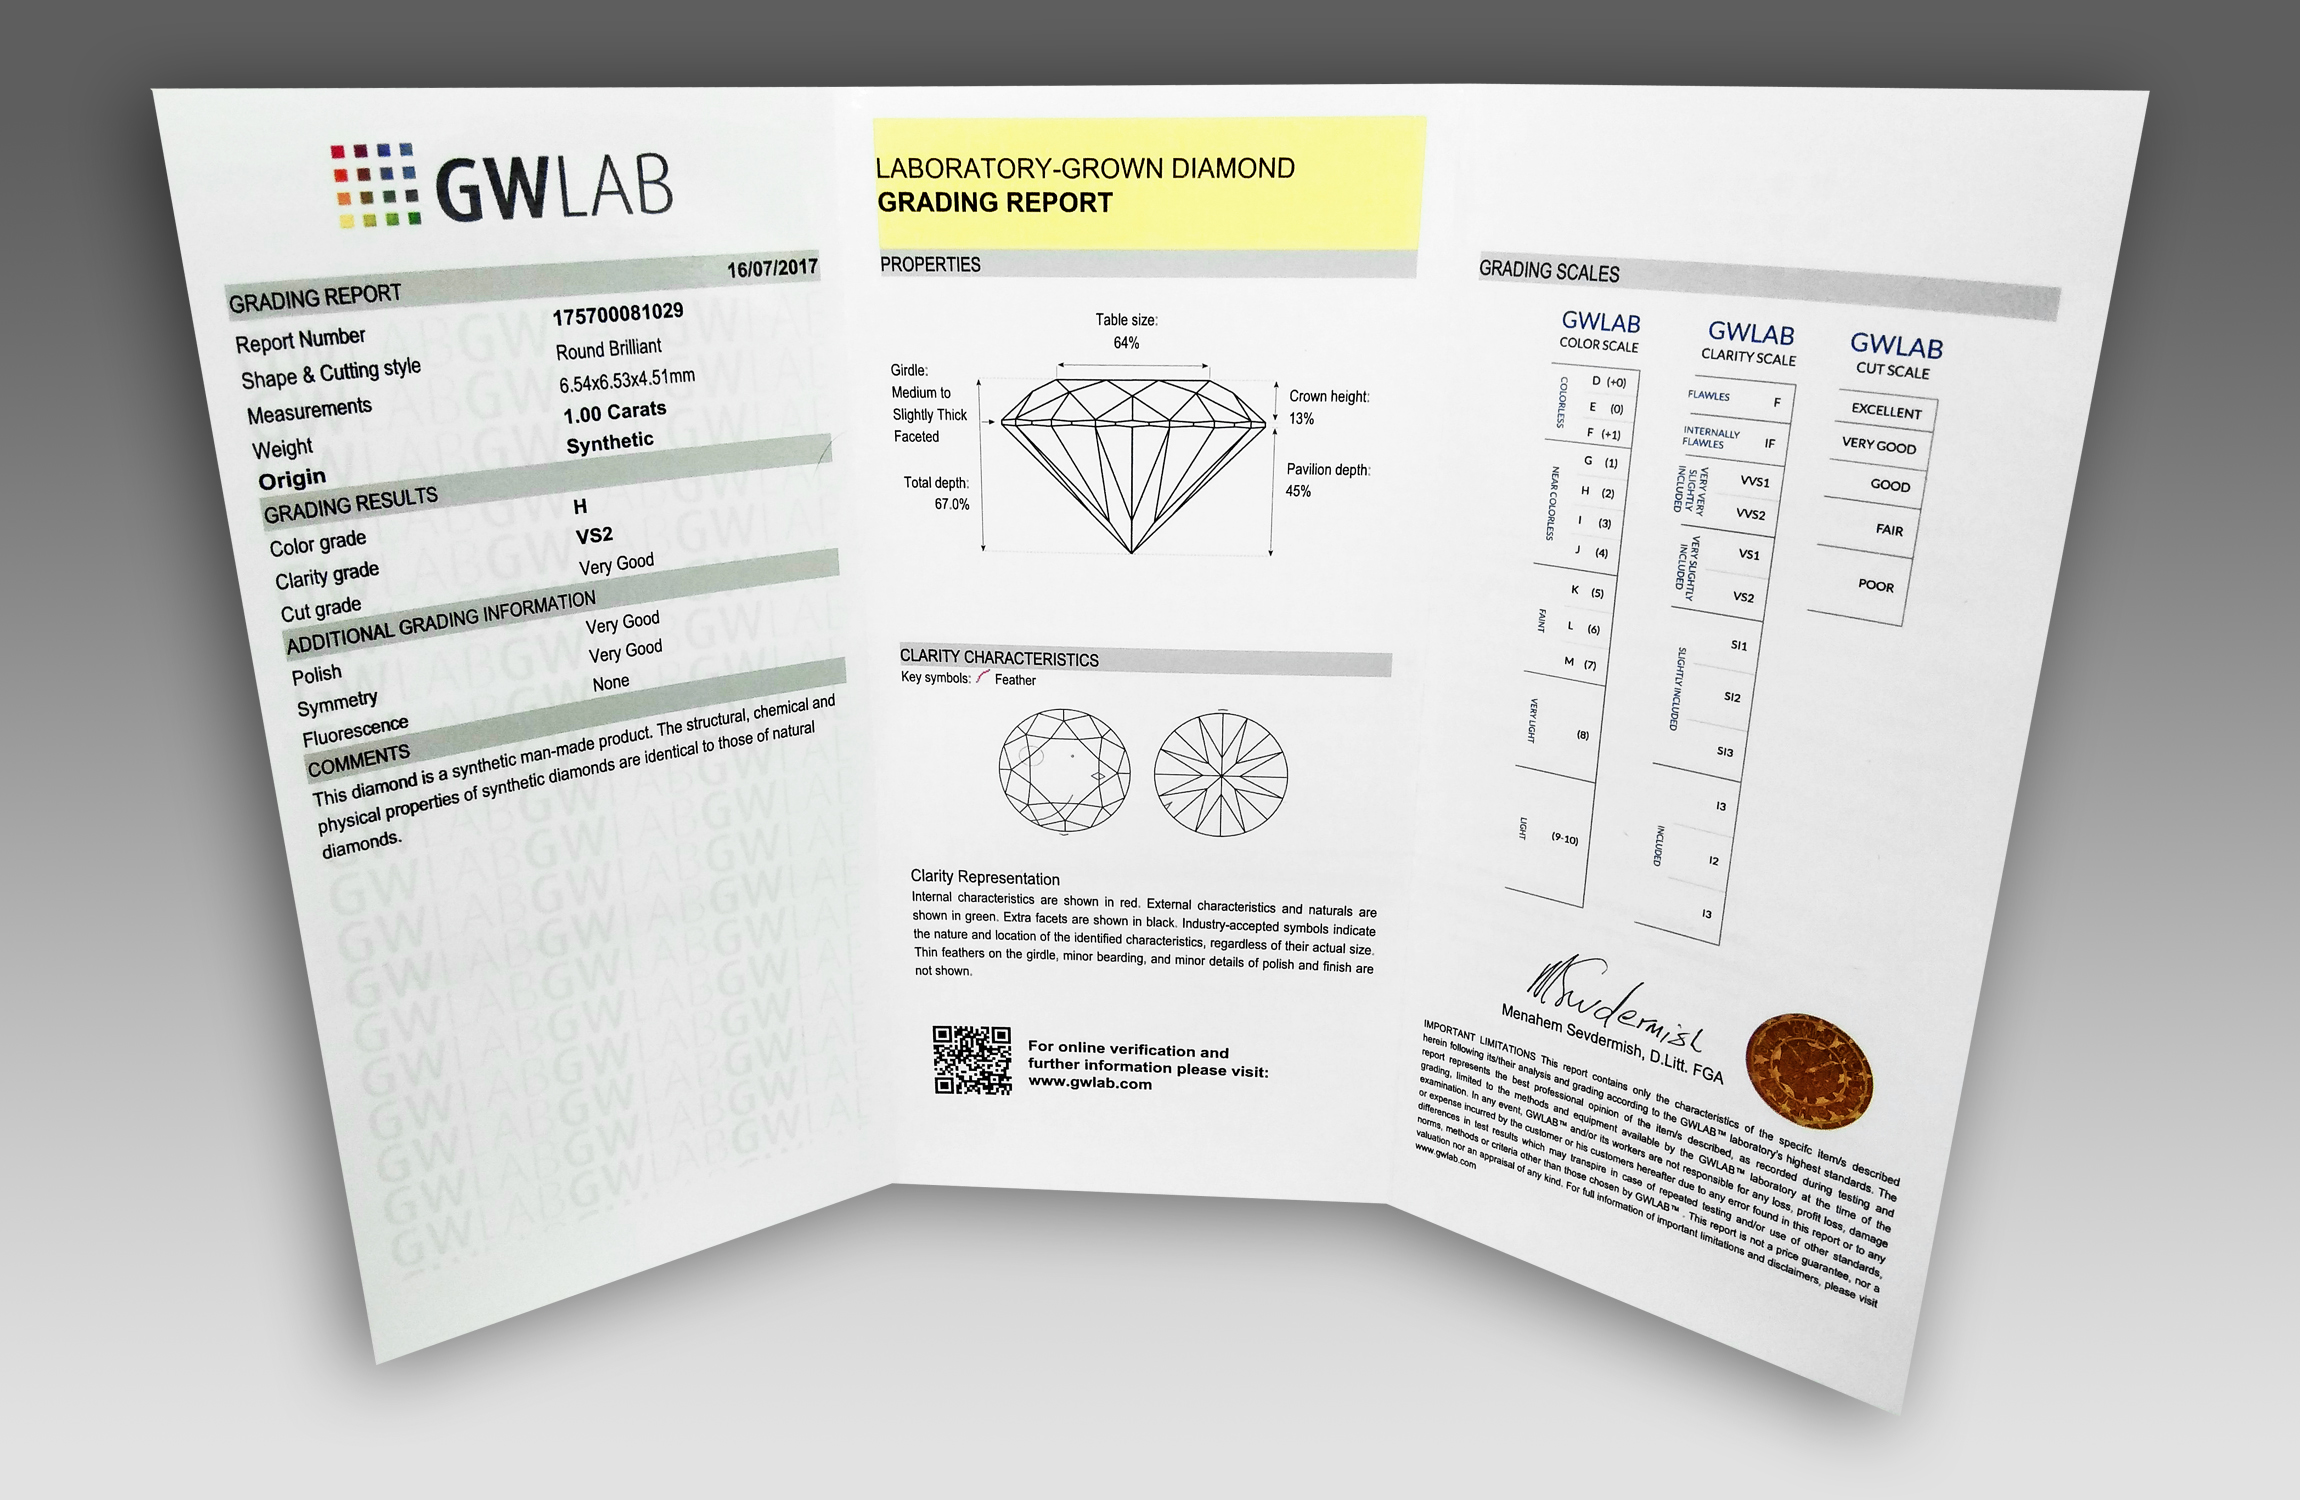 GWLAB Laboratory-Grown Diamond Grading Report - Inner Side